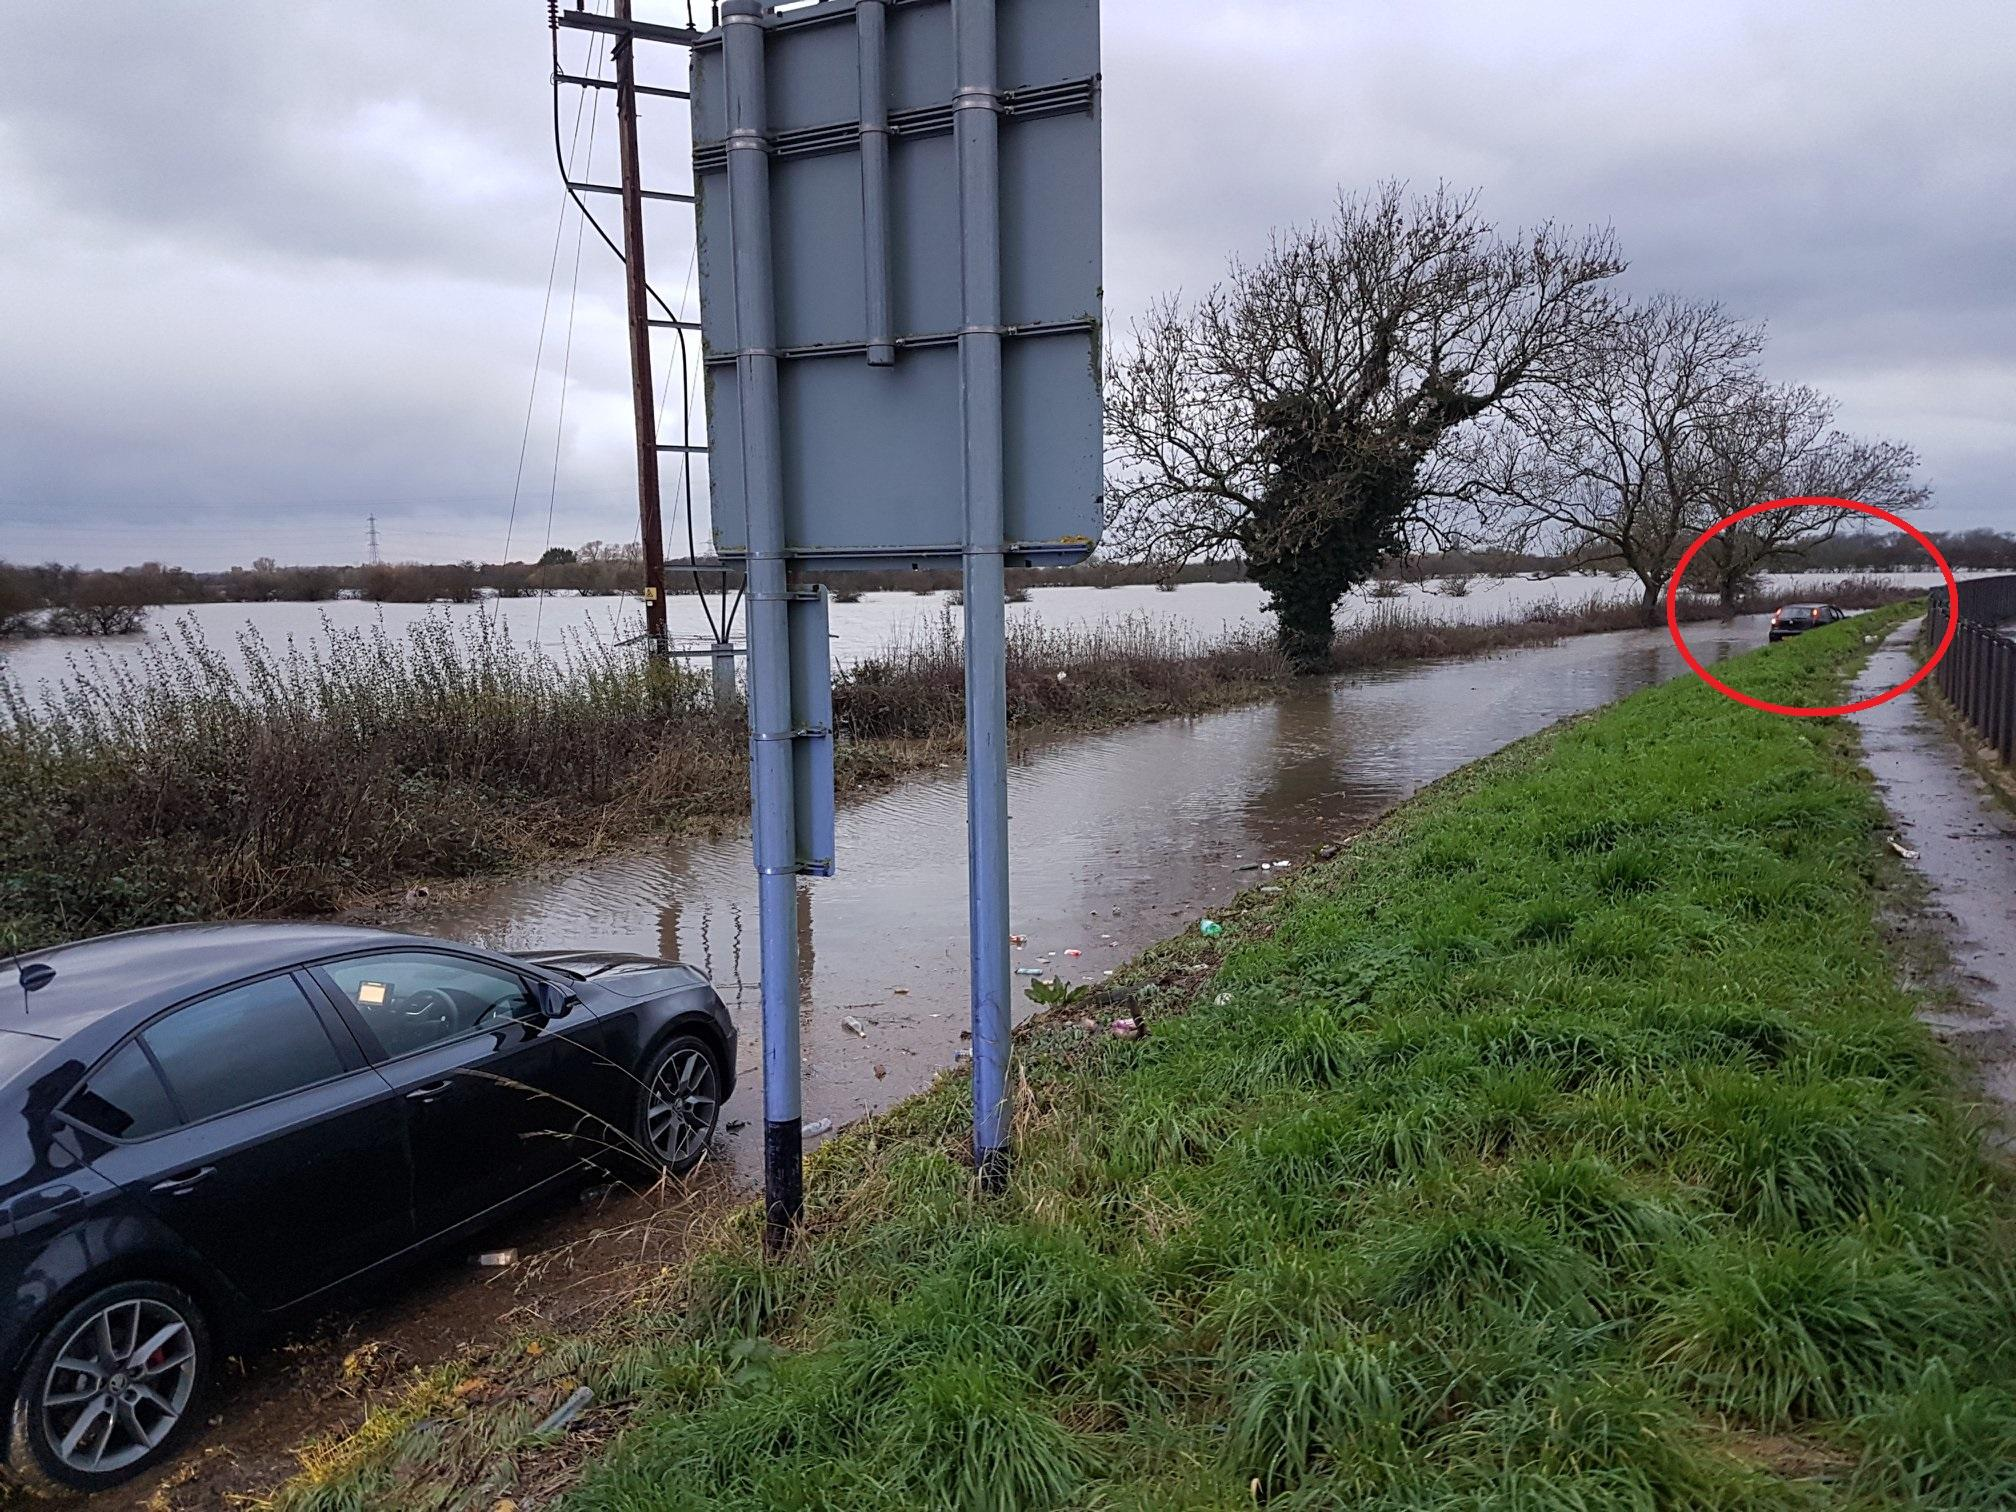 Dopey Doncaster driver arrested after car ends up stranded in flood hit Fishlake after chase - Doncaster Free Press